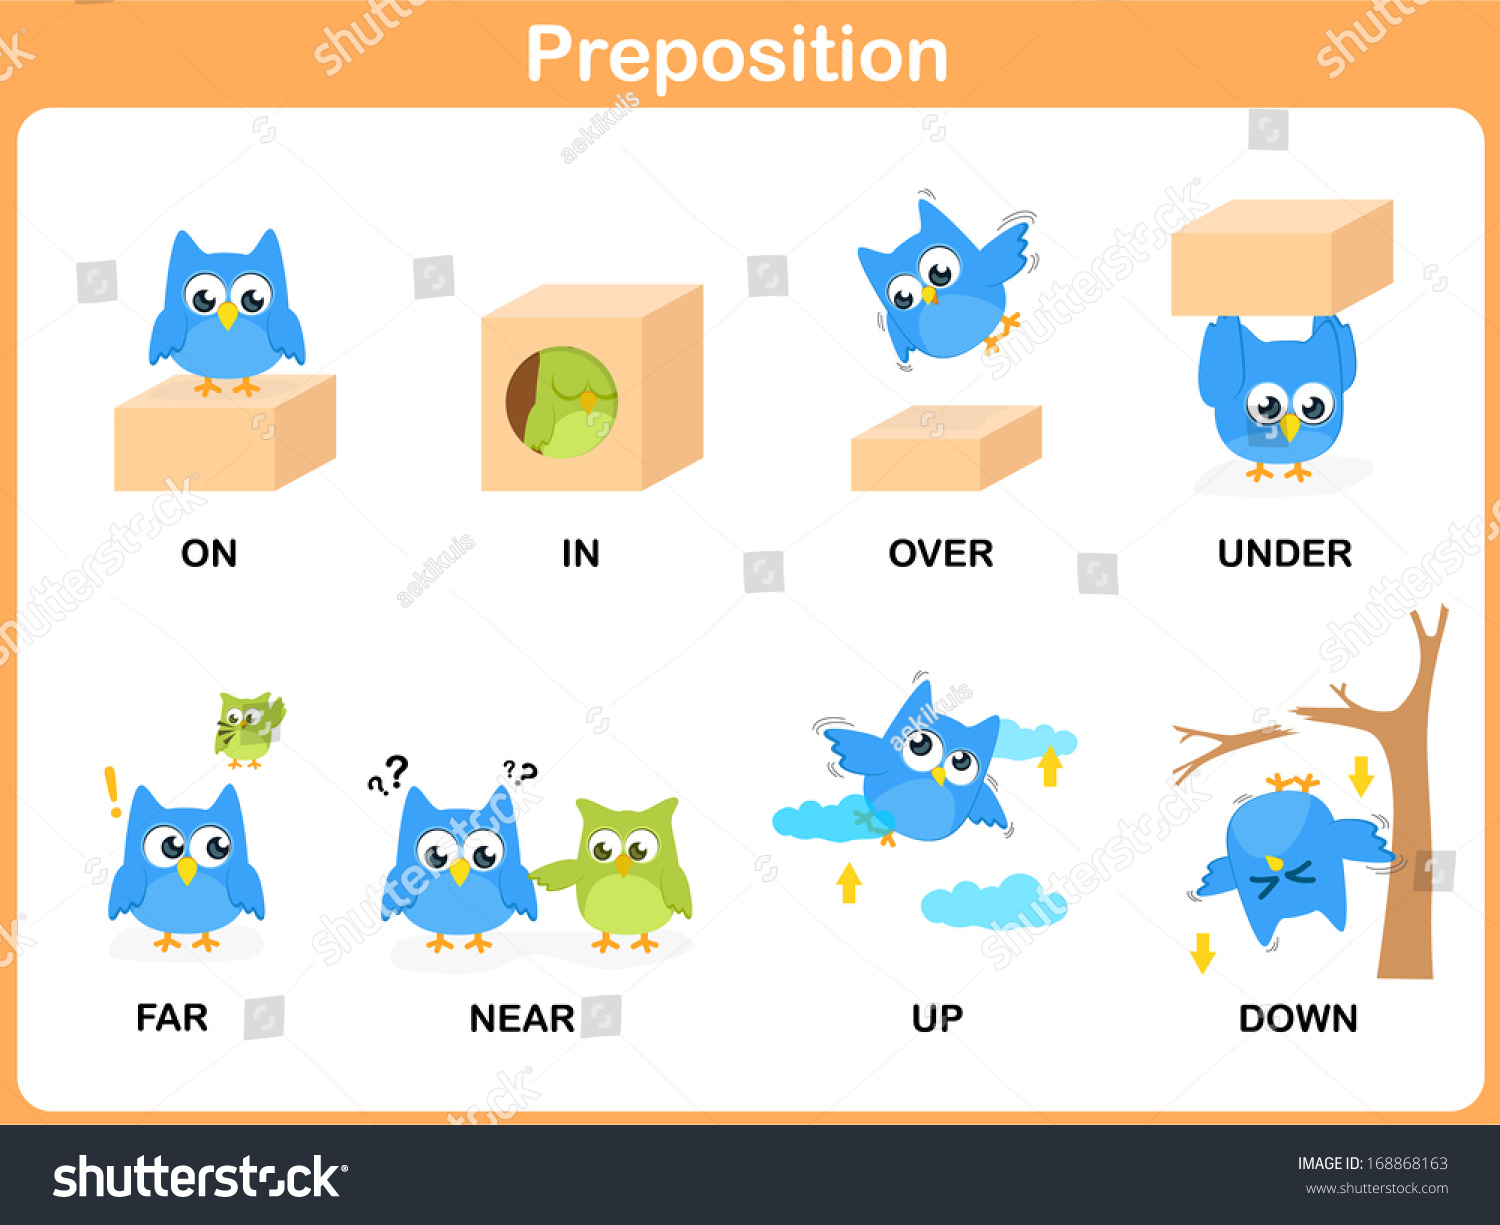 Printables Pic On Preposition preposition motion preschool stock vector 168868163 shutterstock of for preschool